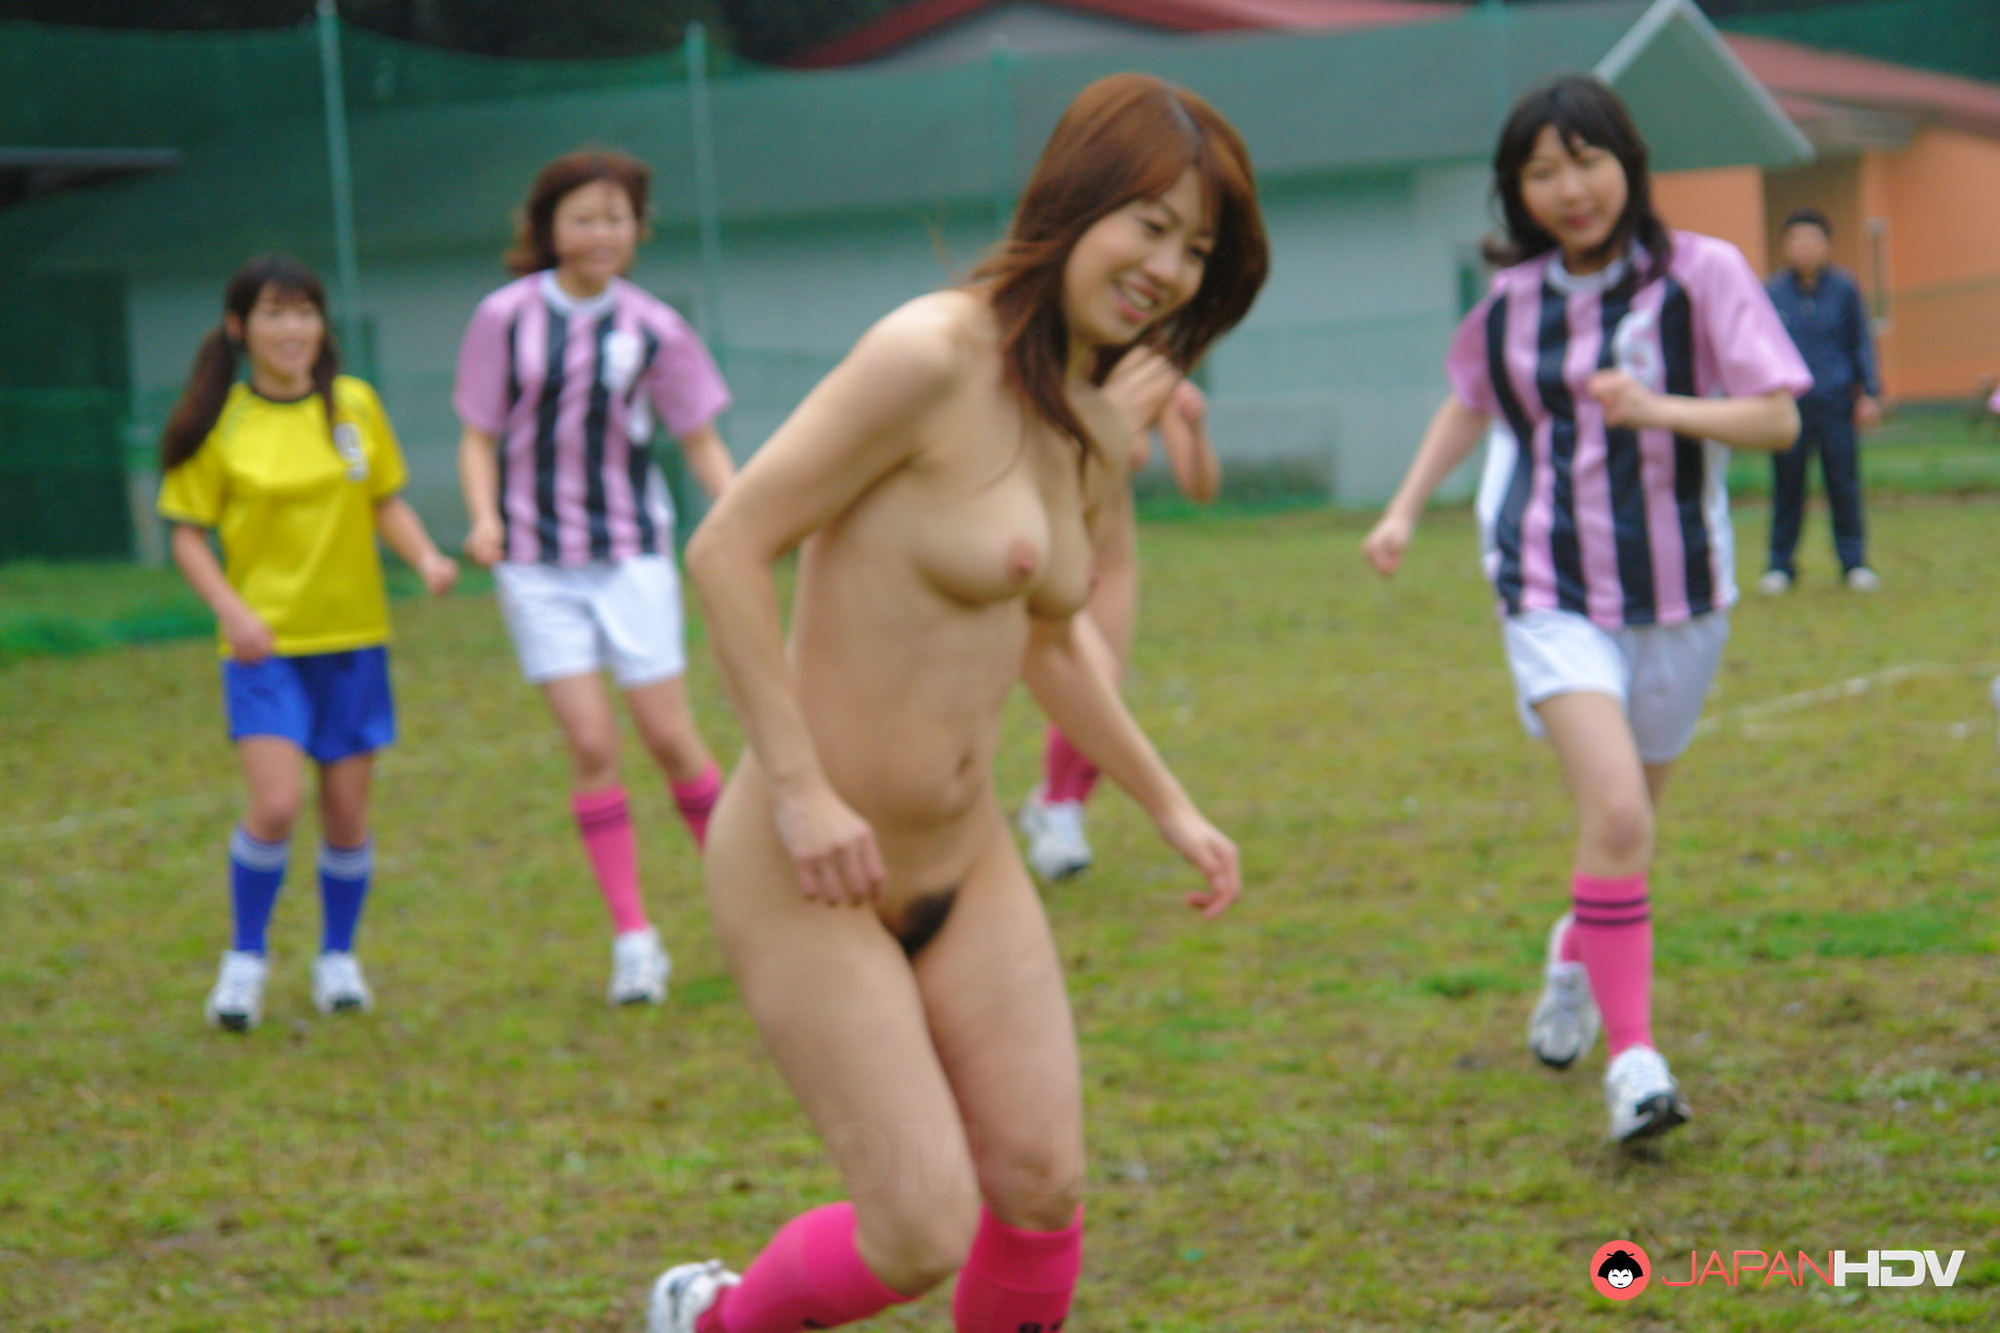 Teen Nude Playing Soccer